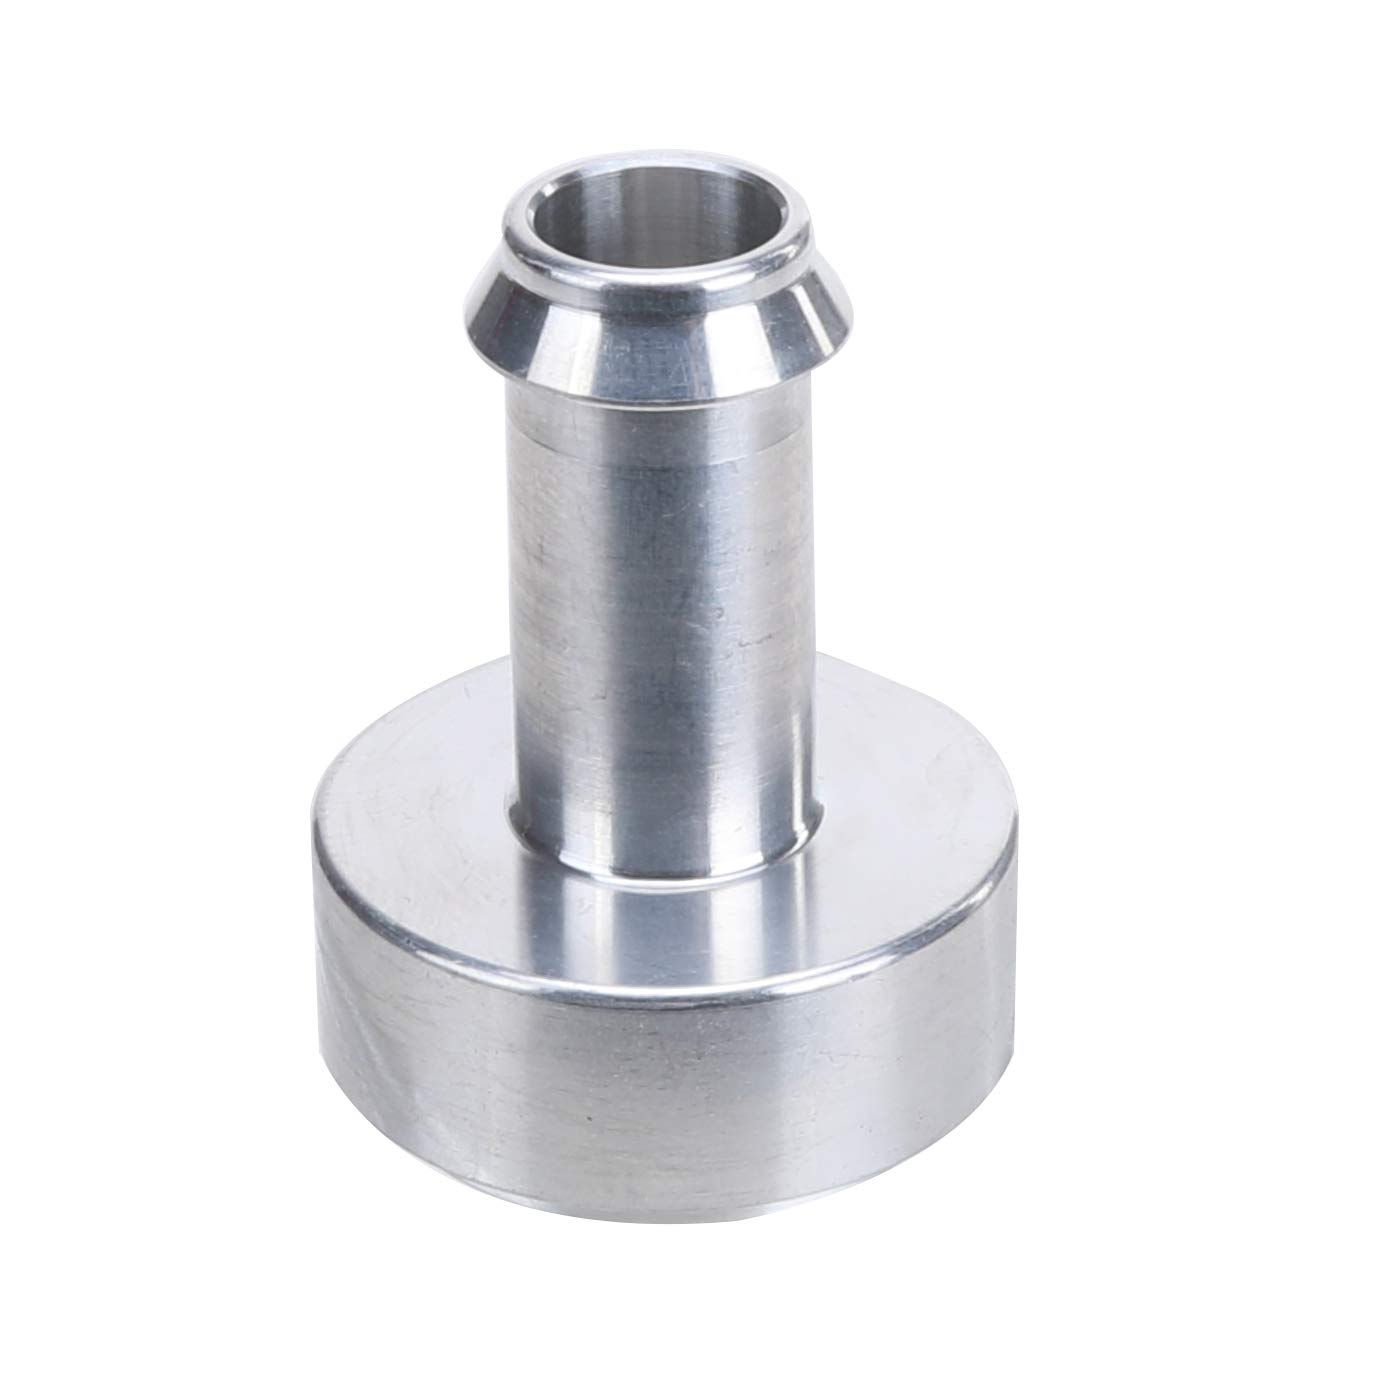 1//2 Weldable Fuel Tank Fitting Steel Female 1//2 NPT Weld On Bung Natural